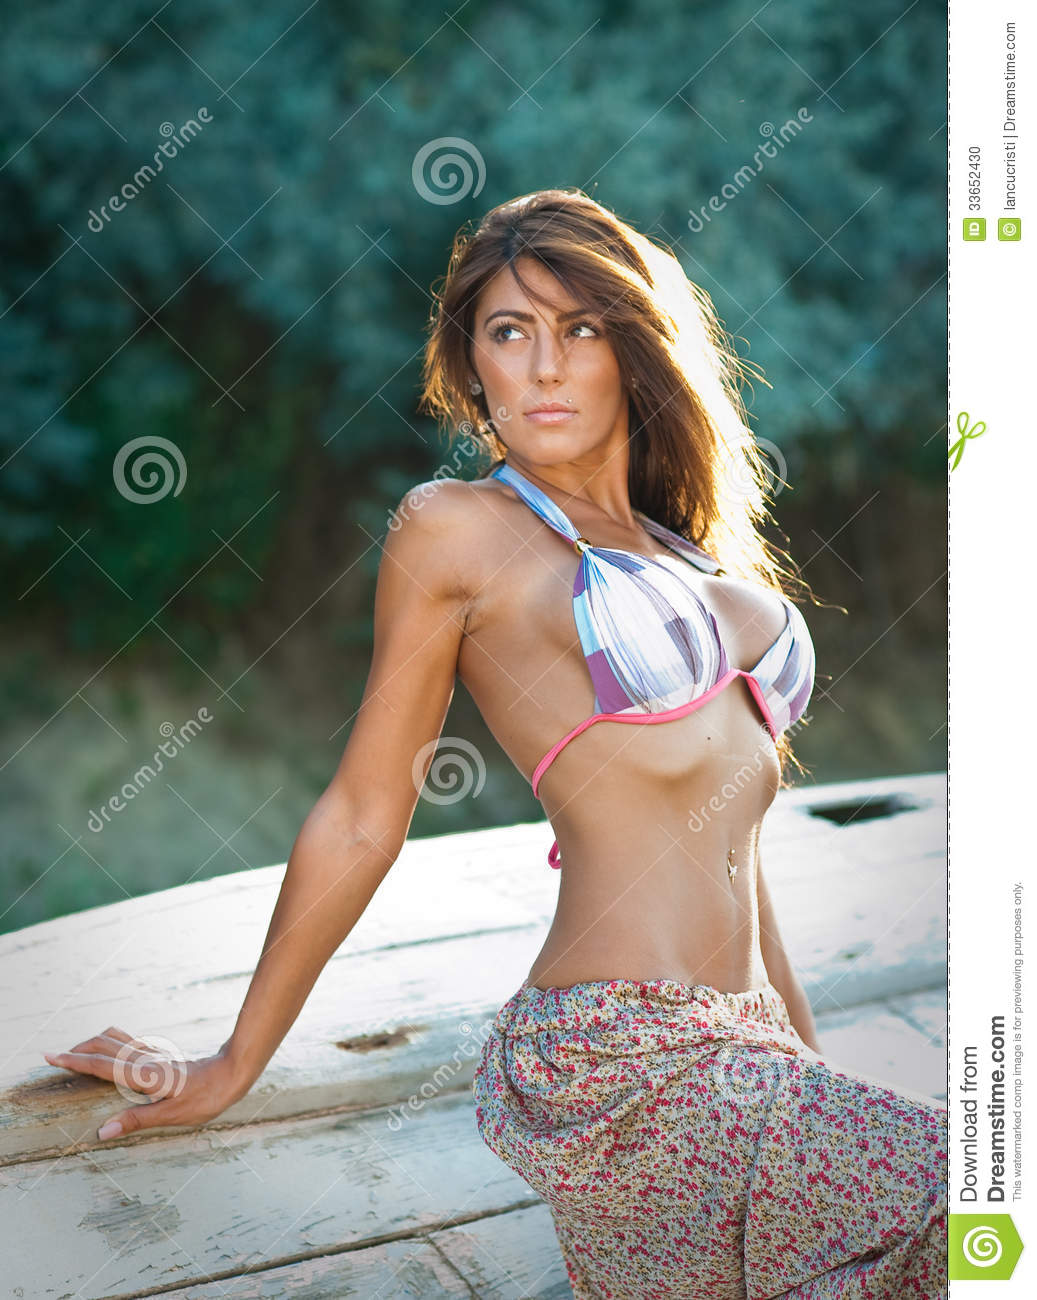 Fashion Portrait Of Brunette Girl In Swimsuit Leaning On A Wooden Boat Stock Photo - Image: 33652430